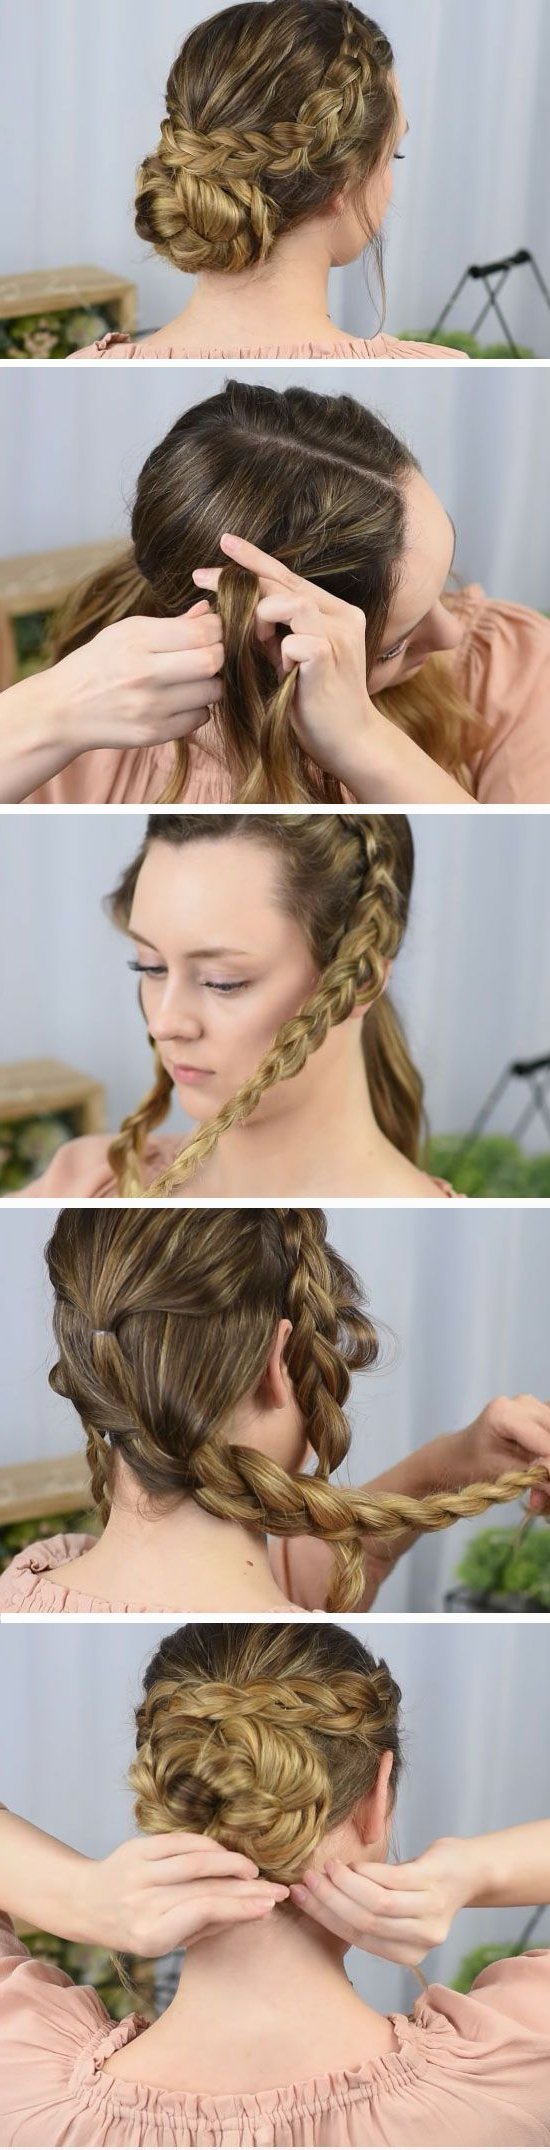 15 Easy Diy Prom Hairstyles For Medium Hair (Gallery 9 of 20)